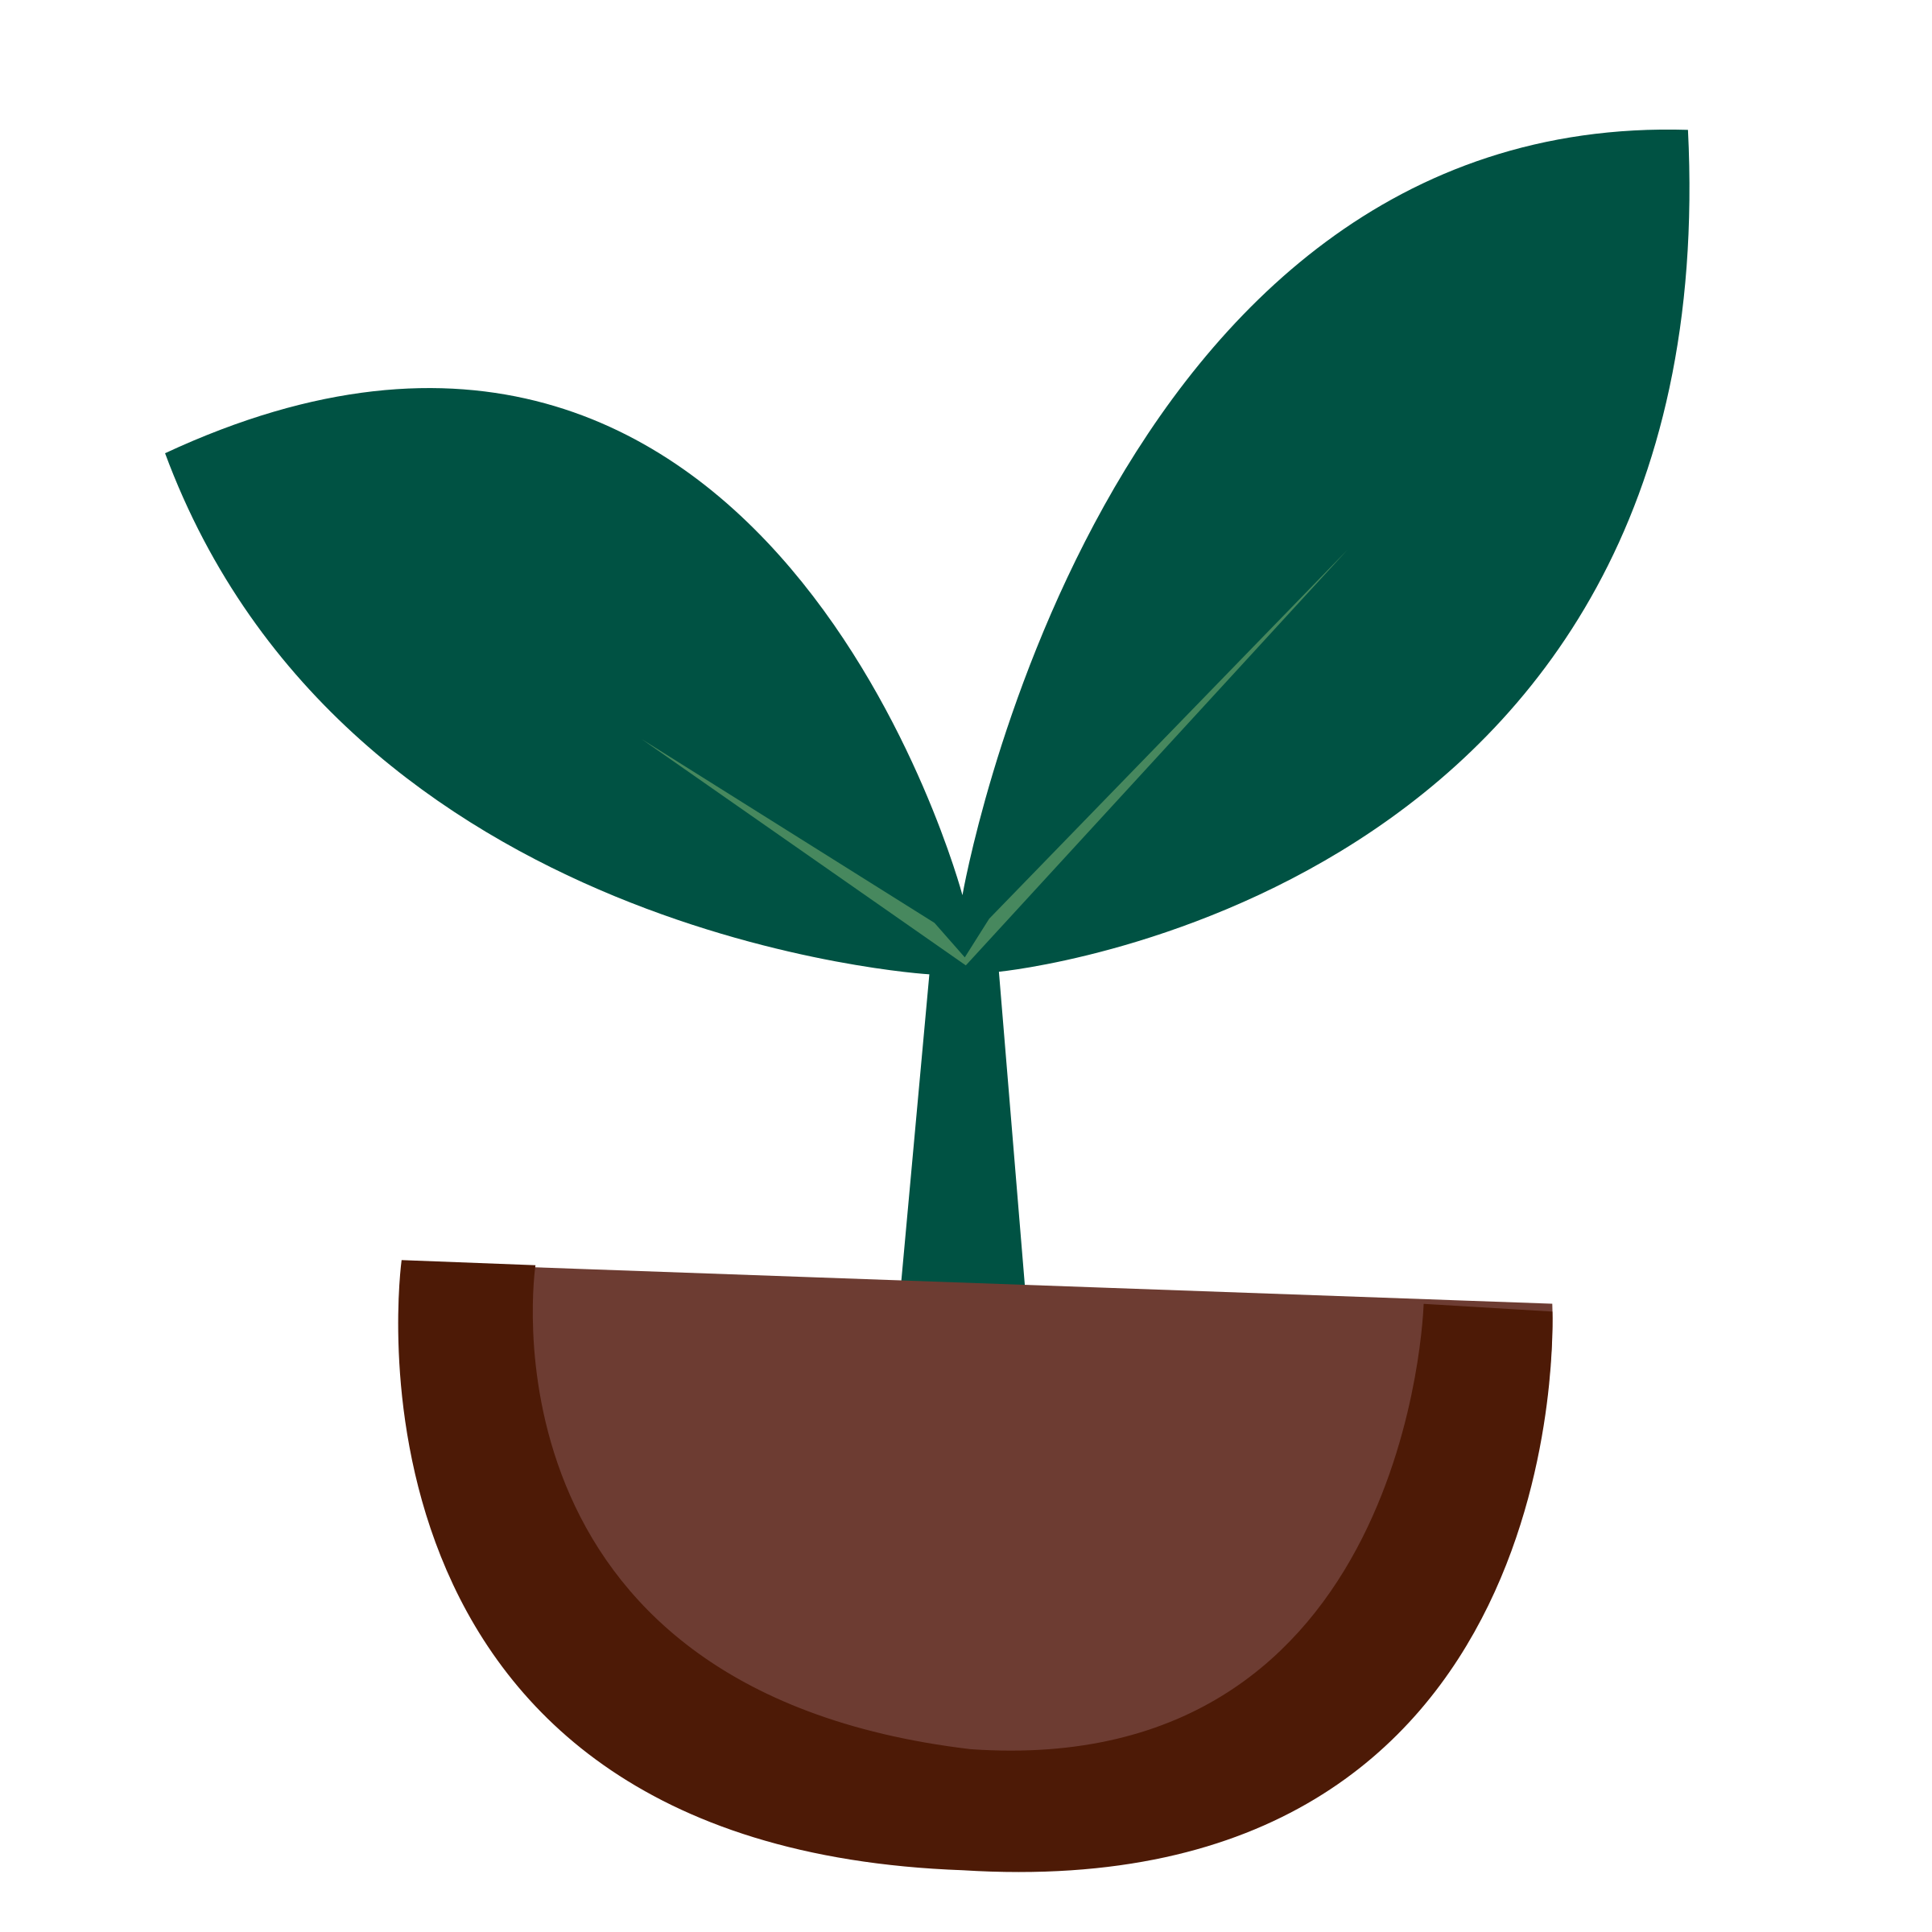 Plant clipart #5, Download drawings